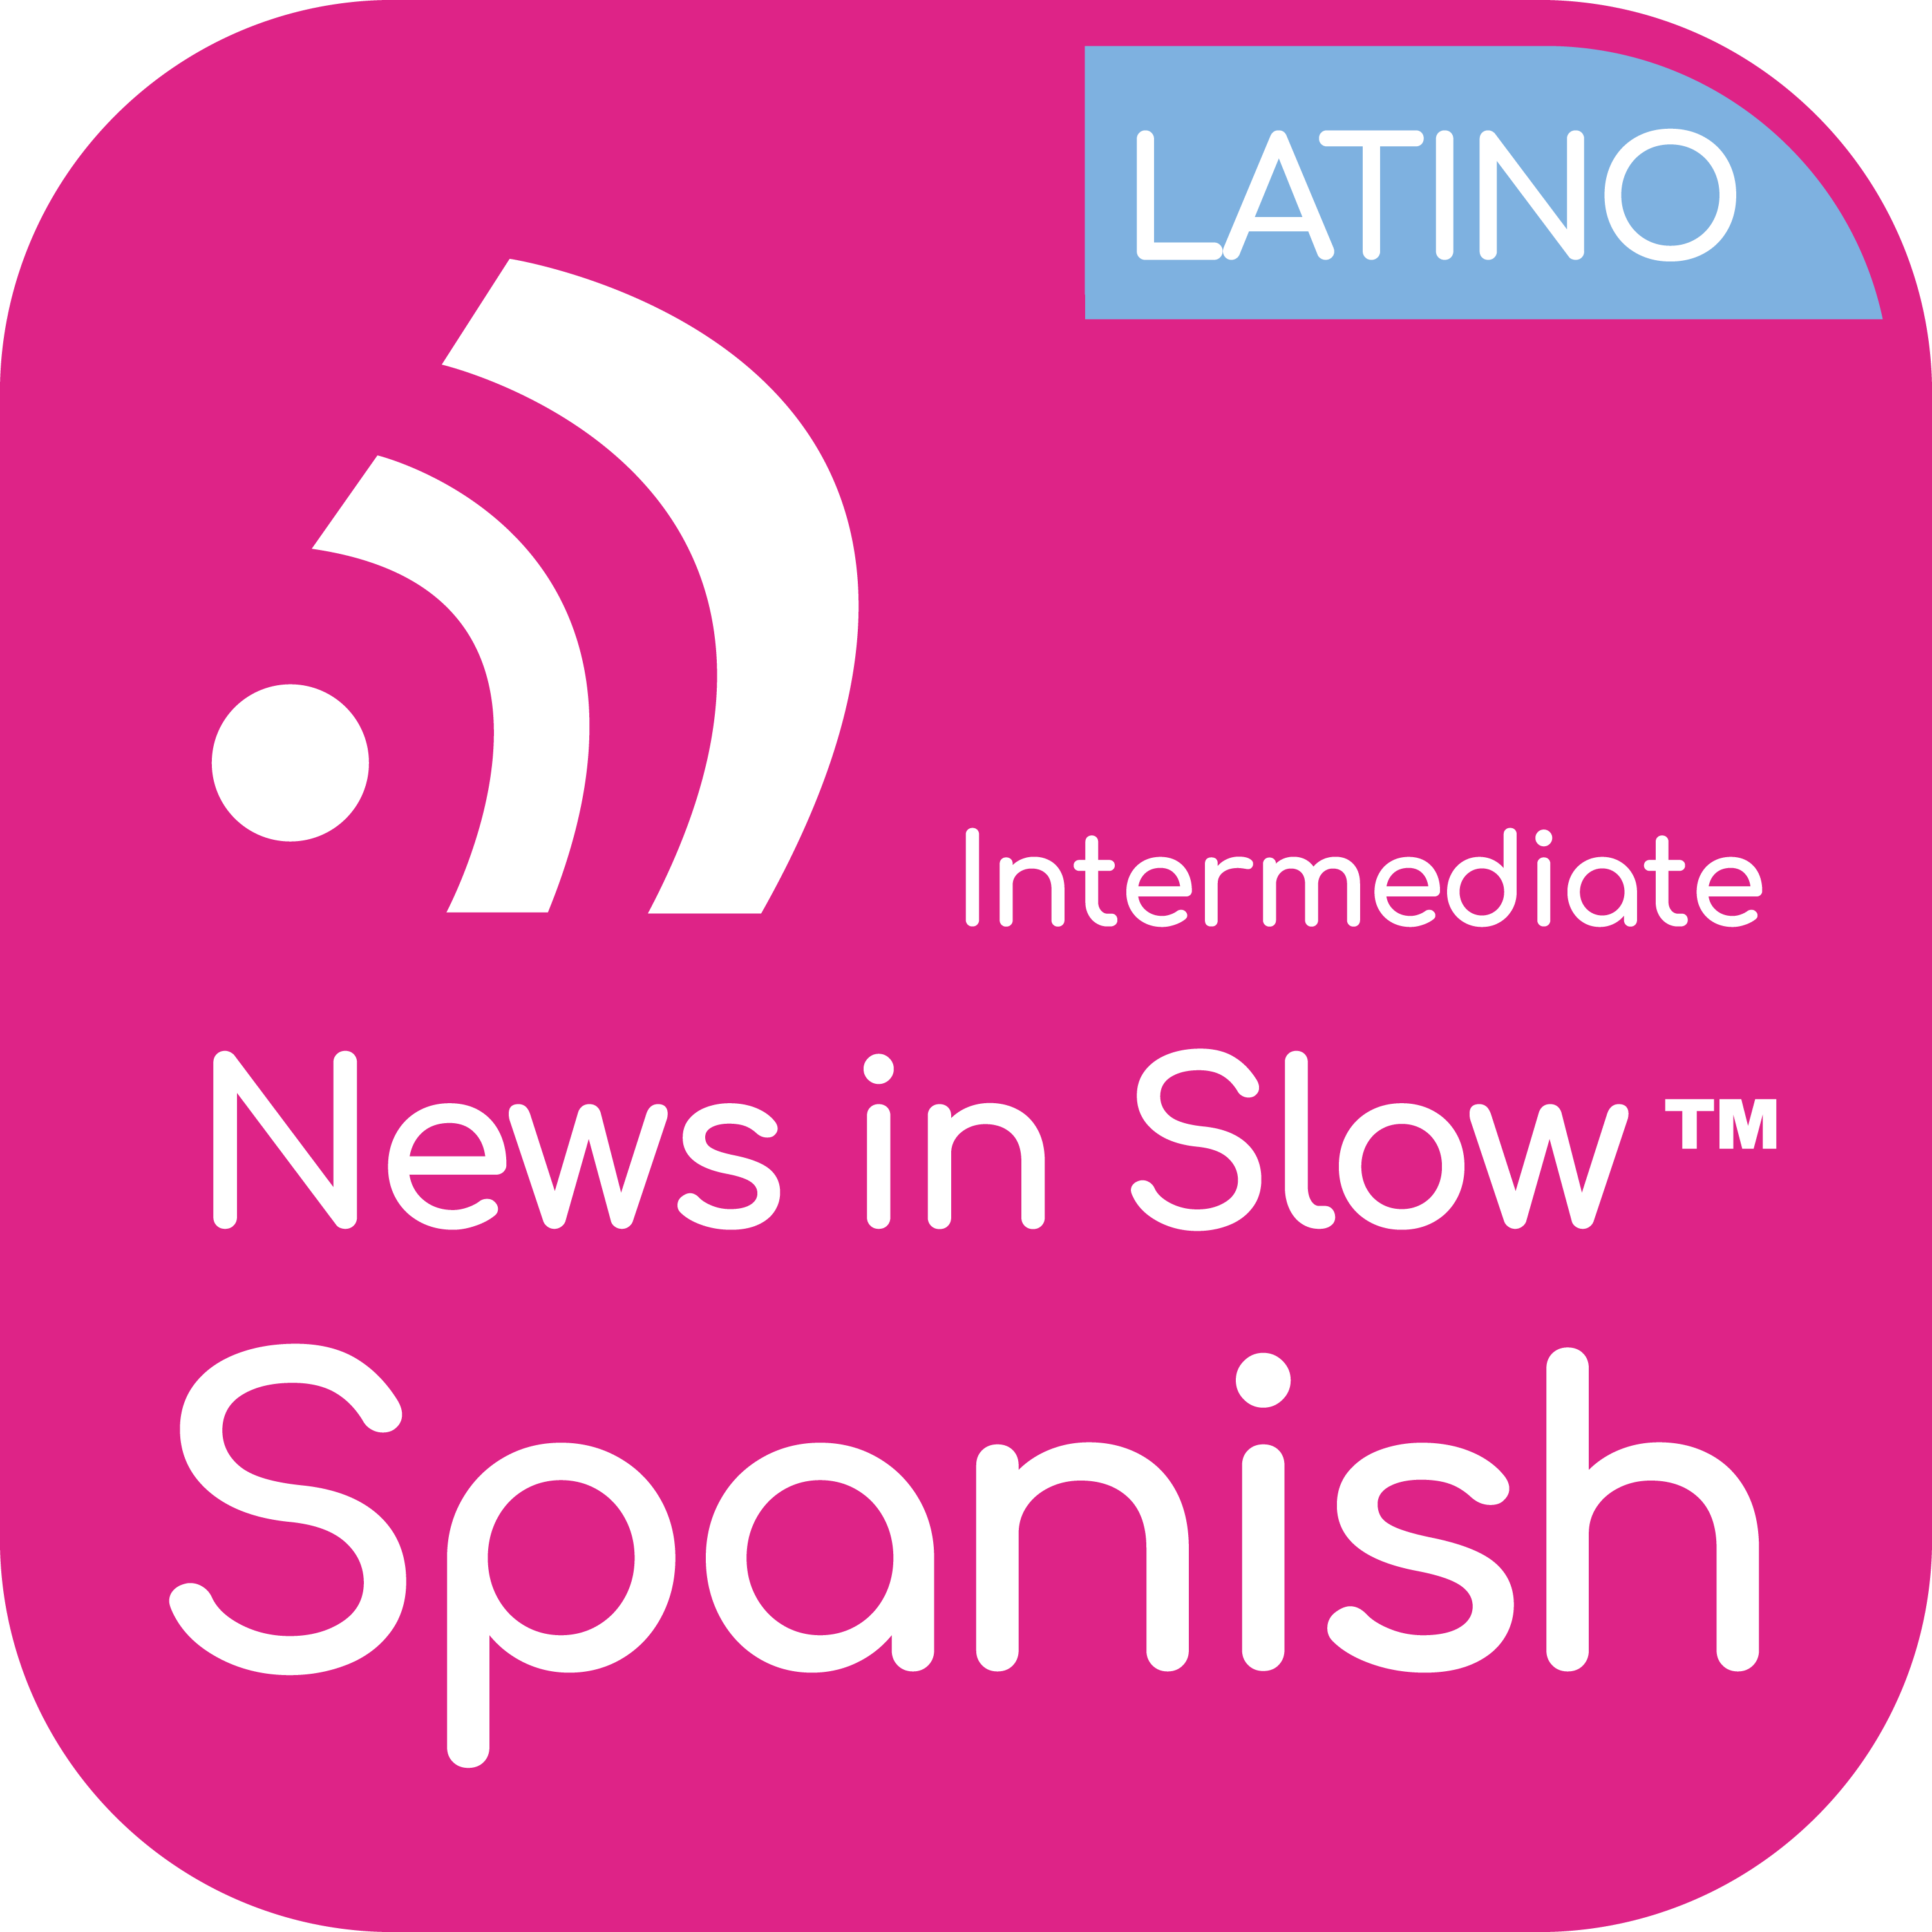 News In Slow Spanish Latino #404 - Learn Spanish through current events